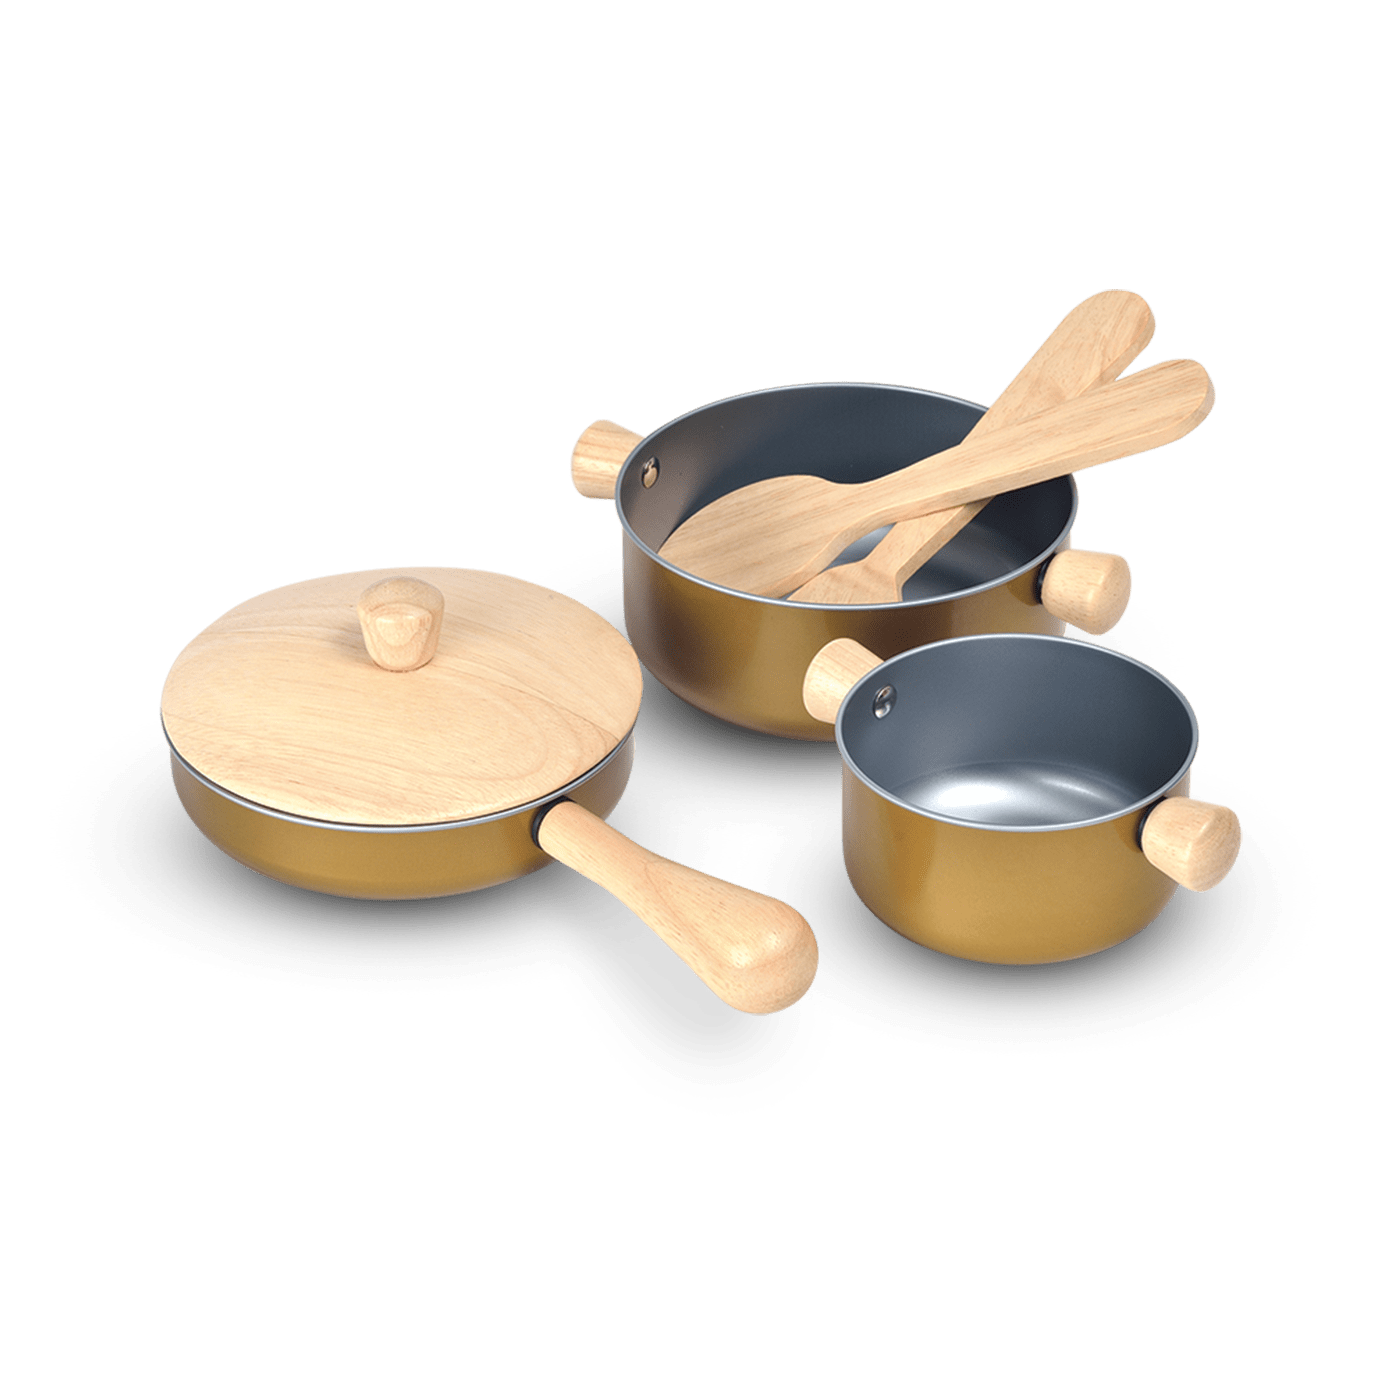 3413_PlanToys_COOKING_UTENSILS_SET_Pretend_Play_Imagination_Creative_Social_Language_and_Communications_Coordination_Emotion_2yrs_Wooden_toys_Education_toys_Safety_Toys_Non-toxic_0.png